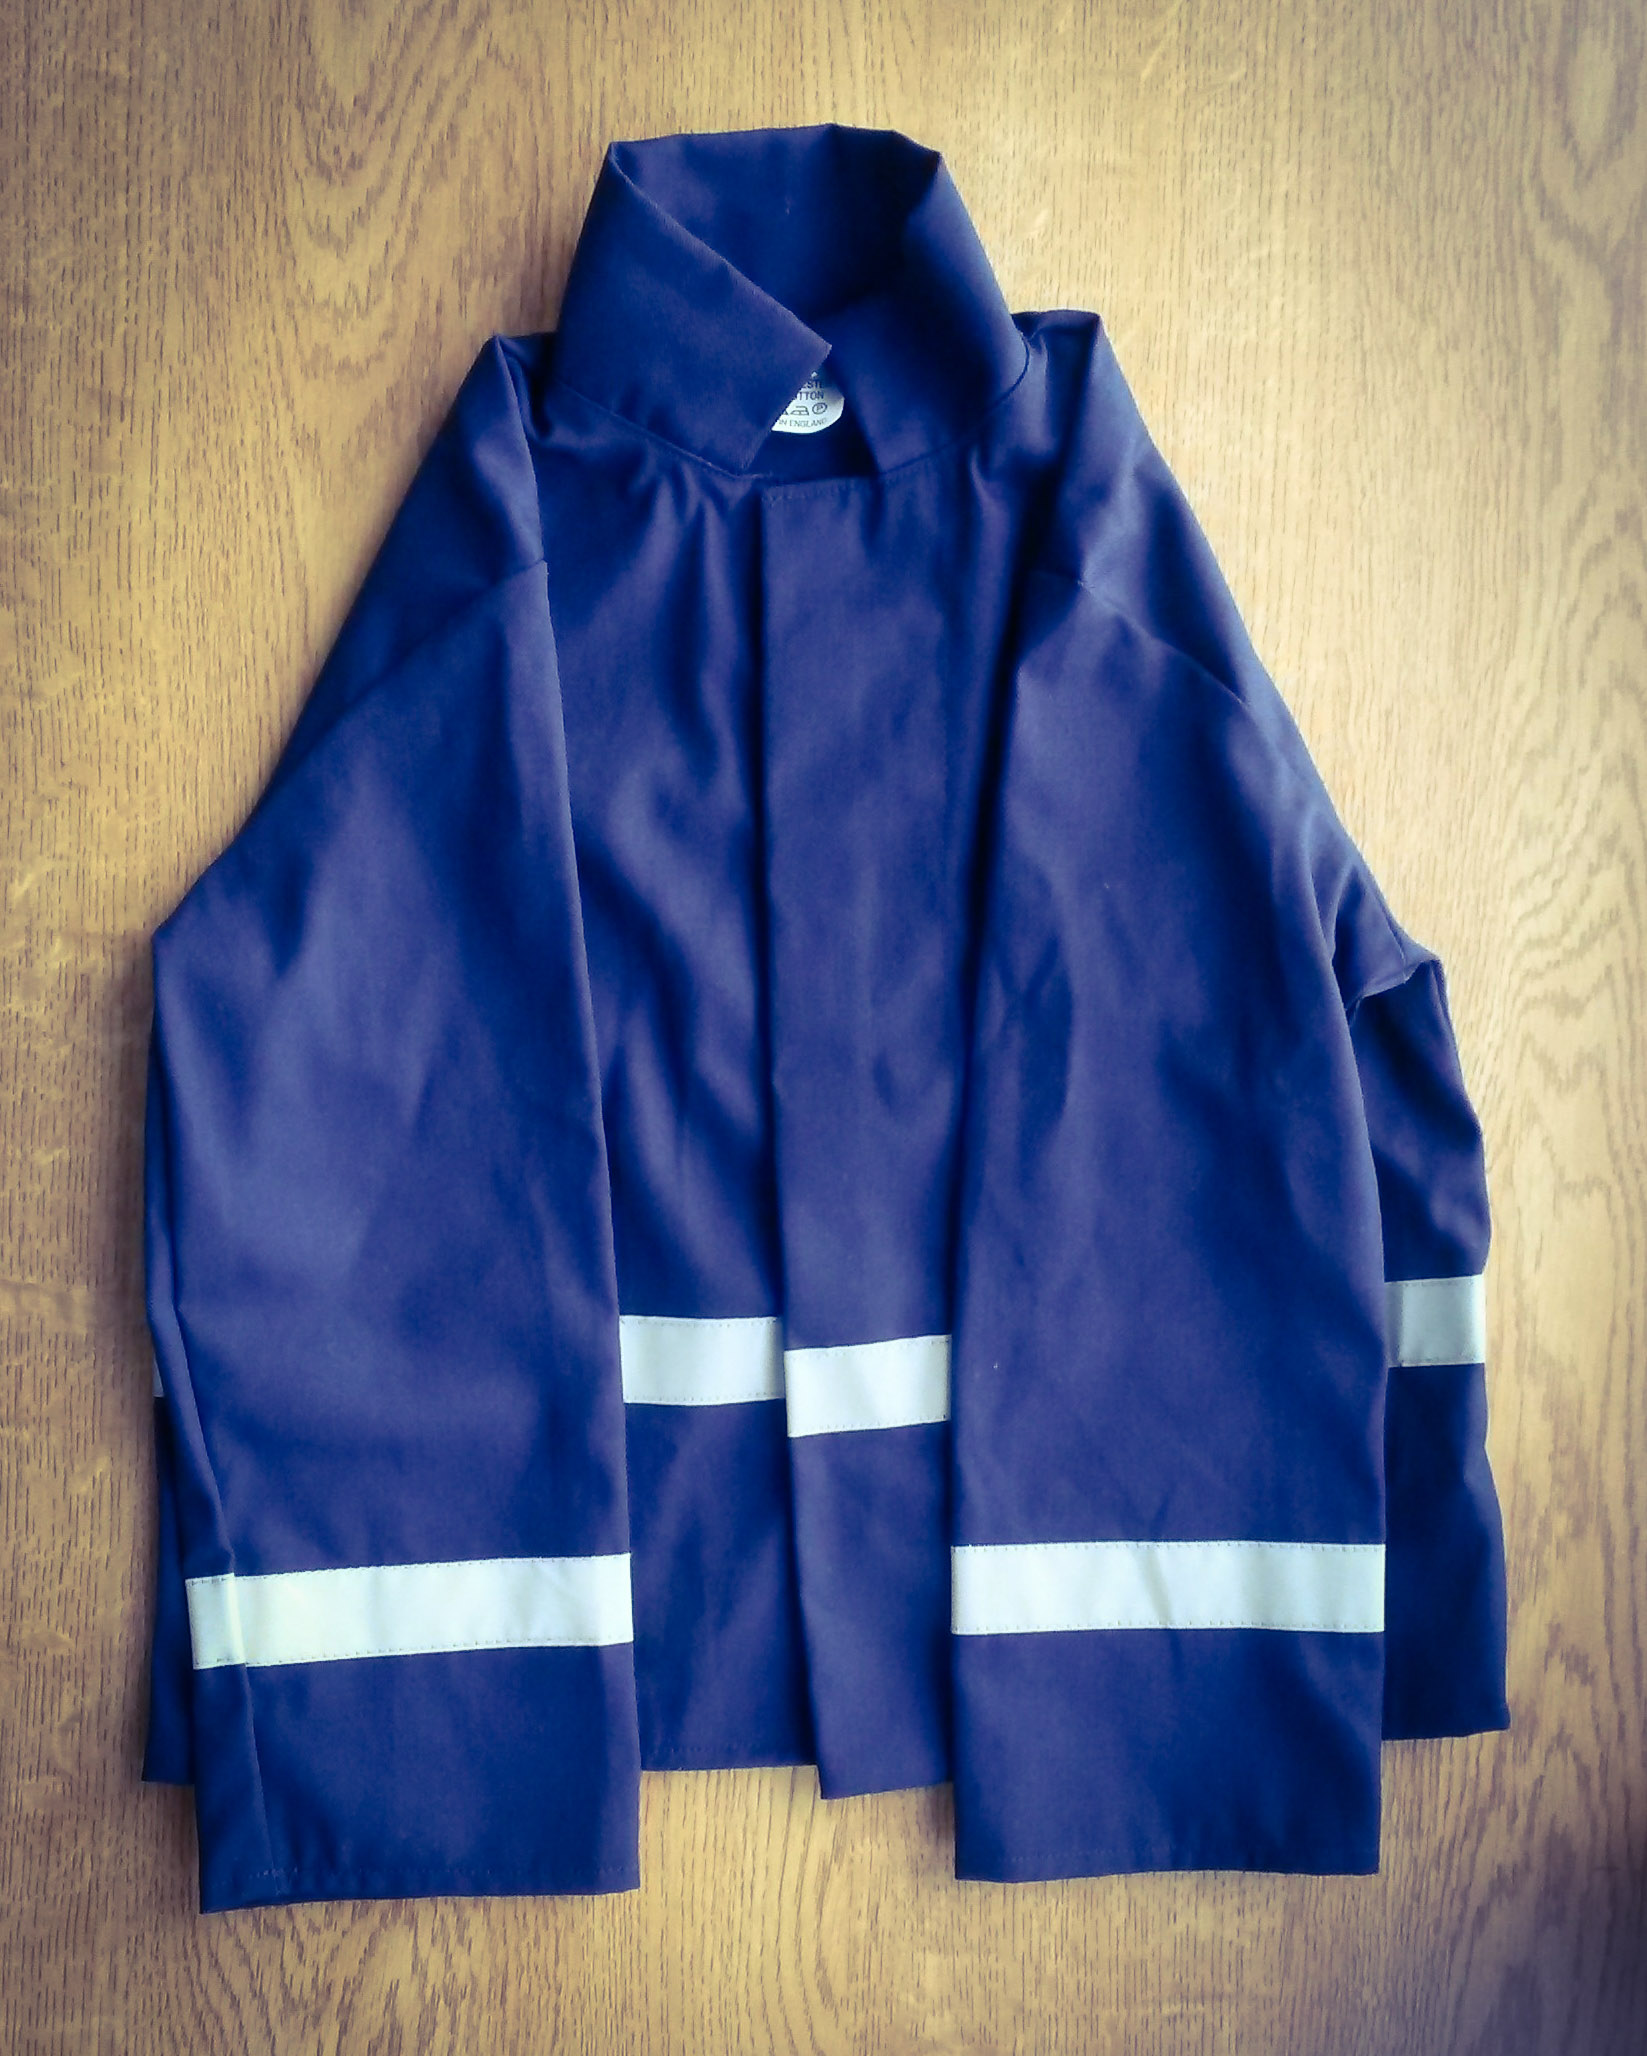 Polycotton drill fabric for fire jacket